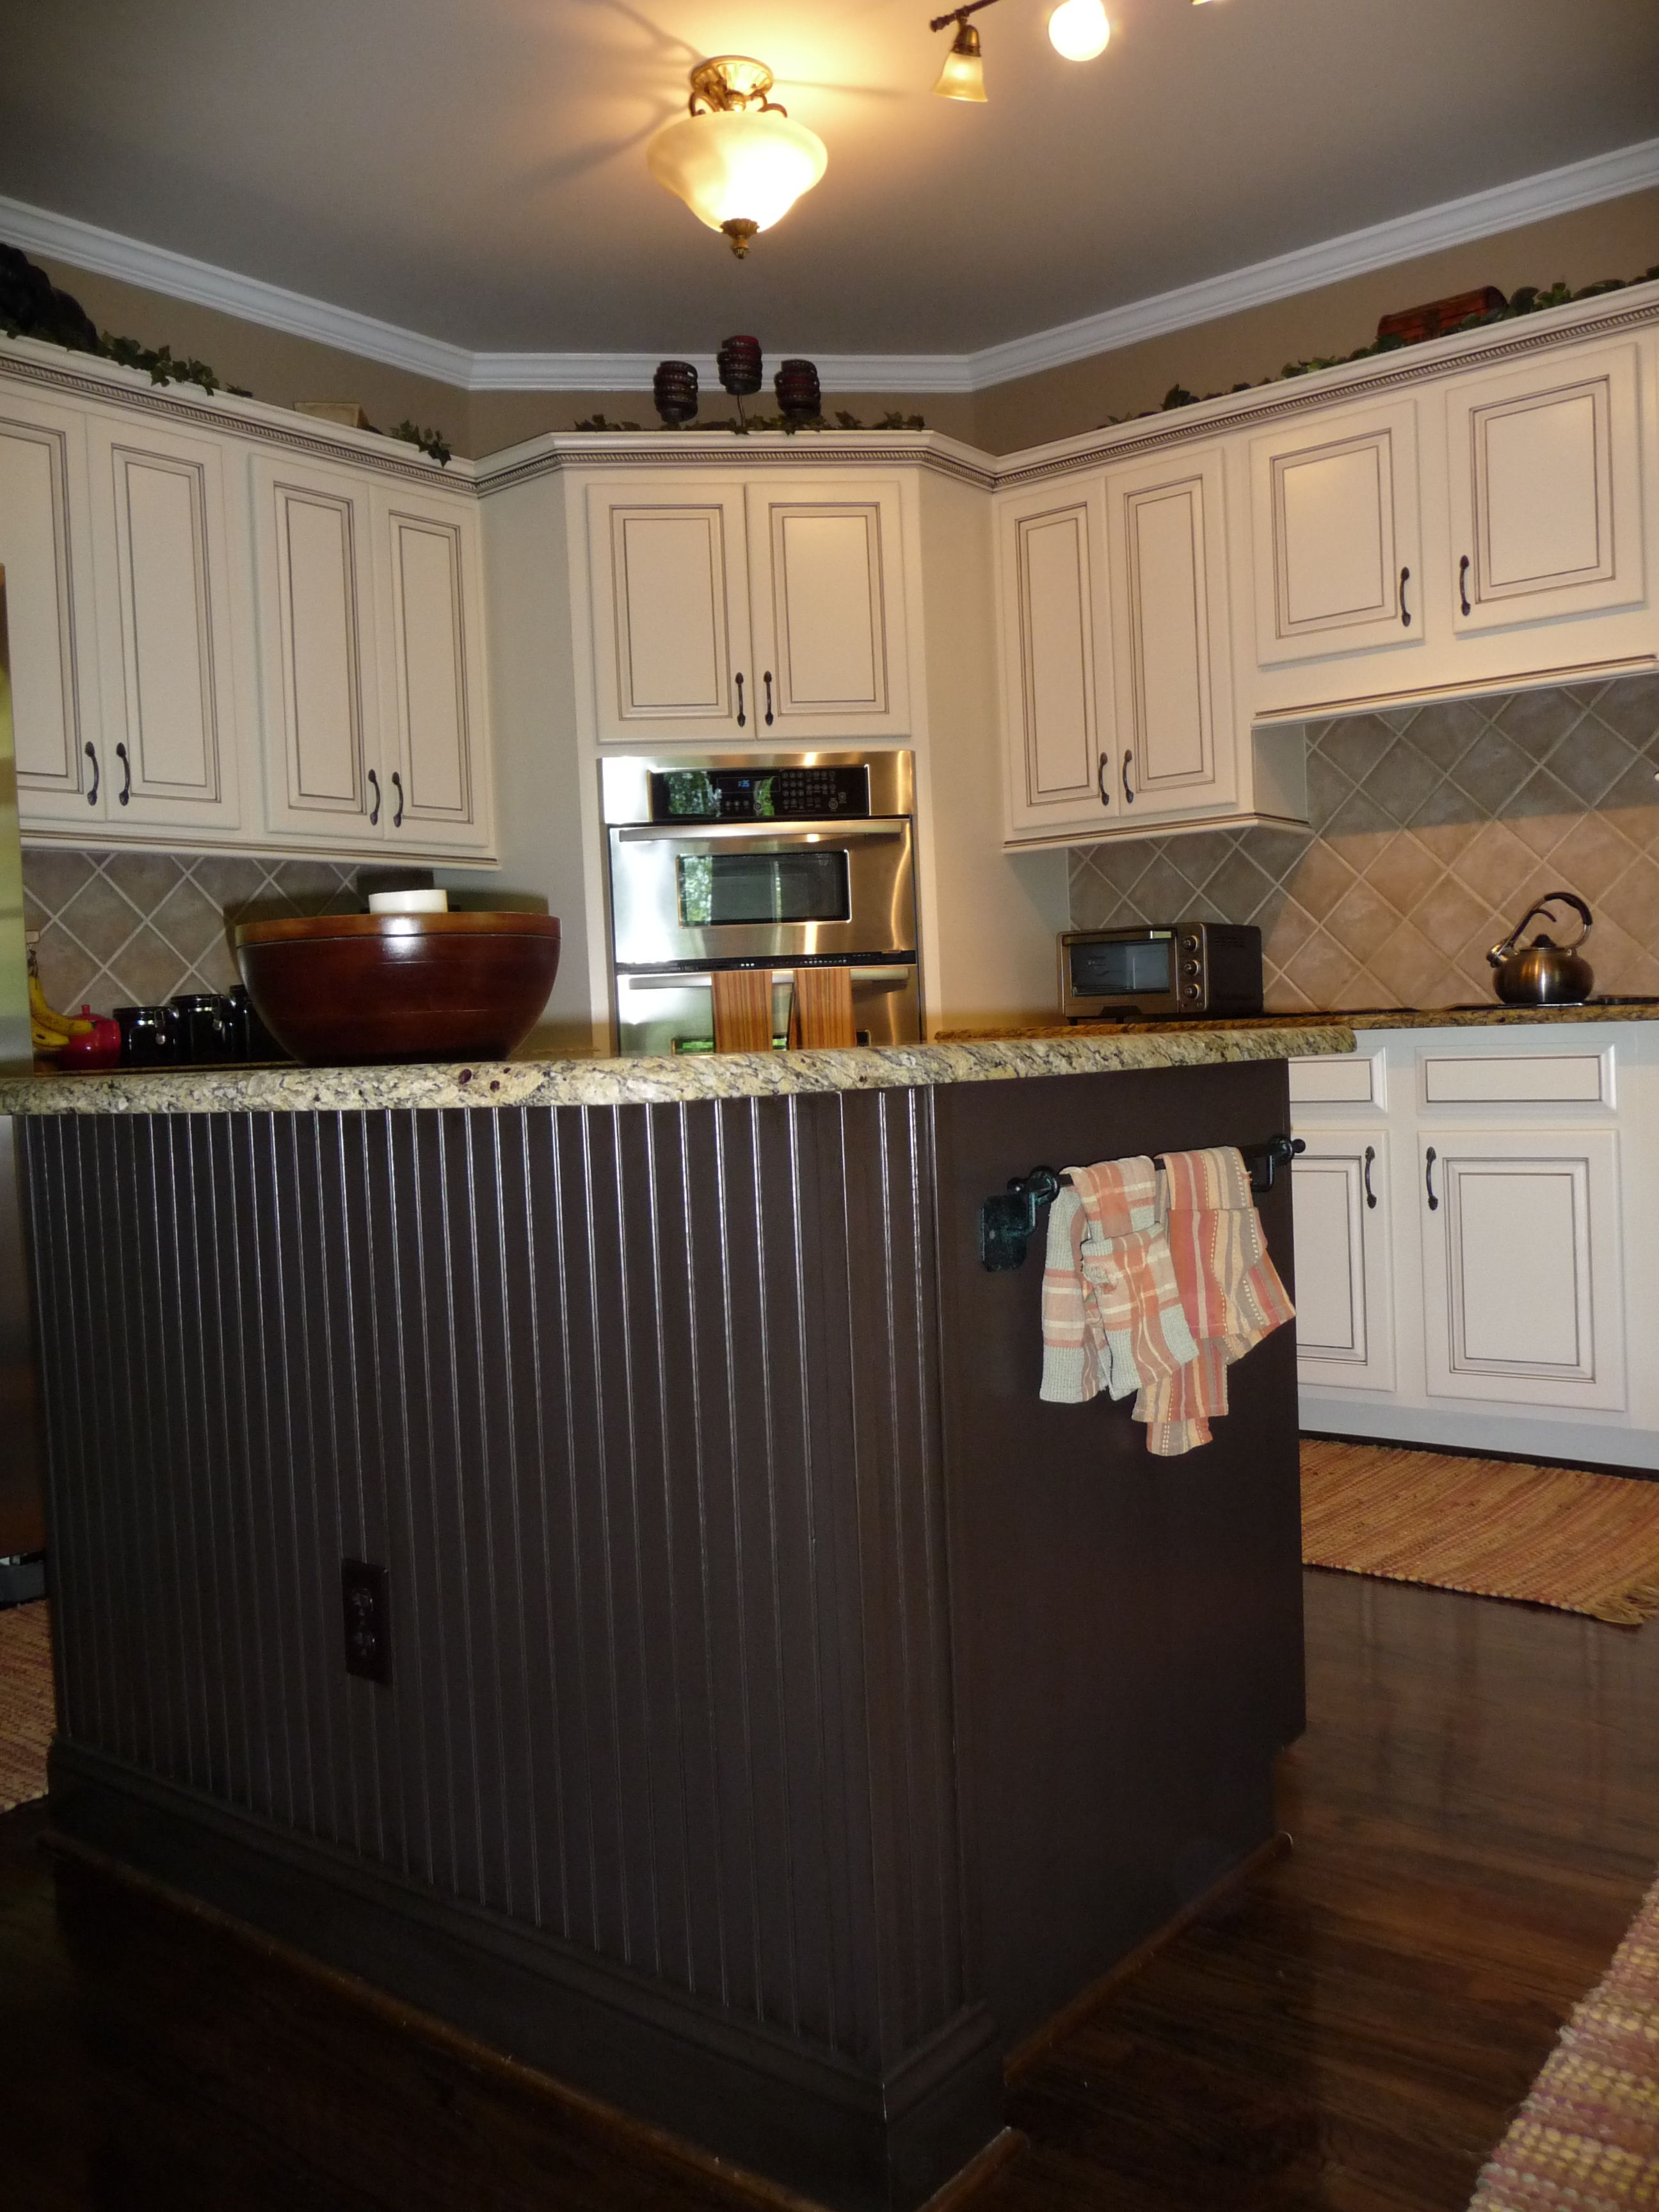 Great My Dream Kitchen, At Last! Added Light Rail At The Bottom And Rope Crown  Moulding At The Top; Island Contrast And Painted Chocolate Brown With  Darker Glaze ... Nice Look